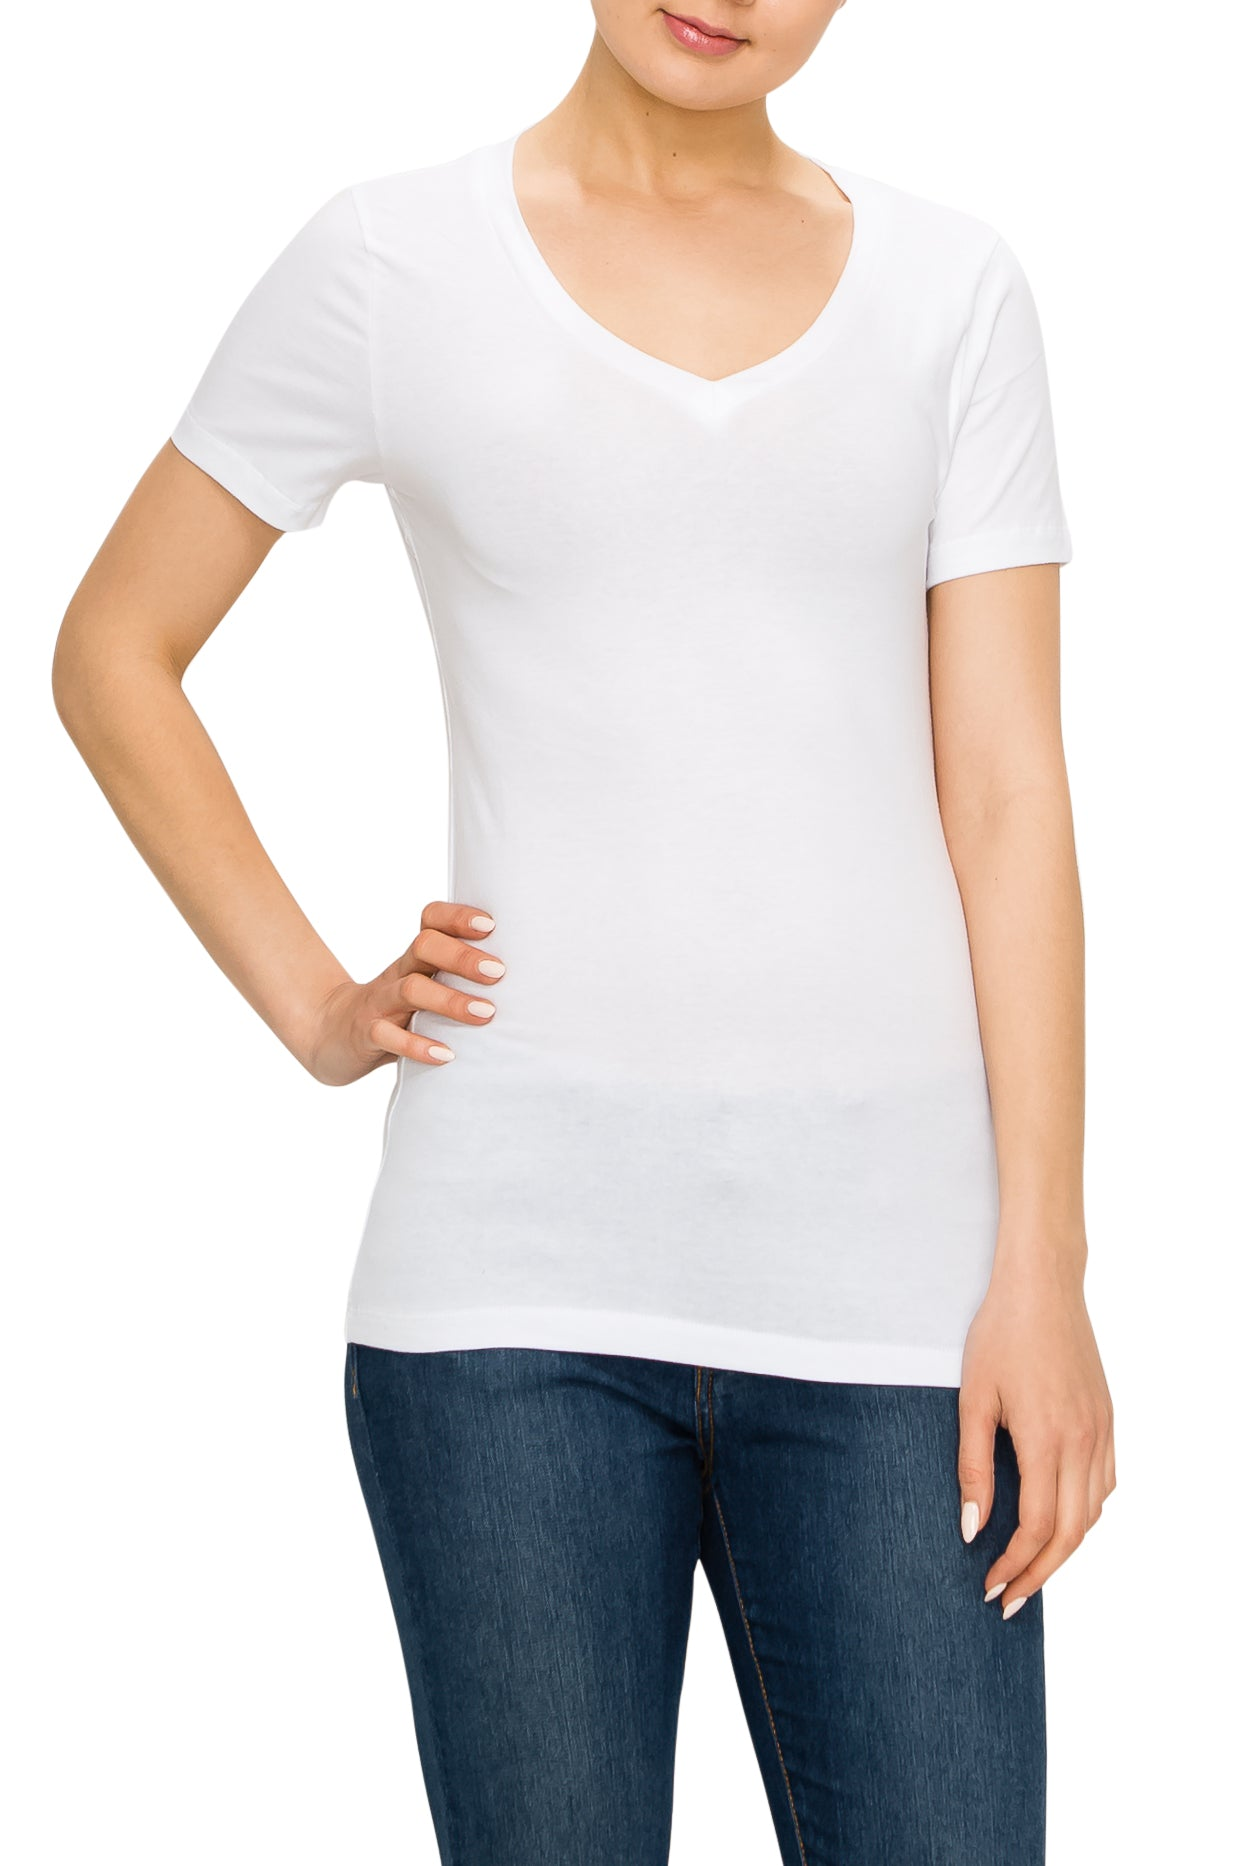 Short Sleeve T-Shirt Top (4 Pack) - Poplooks